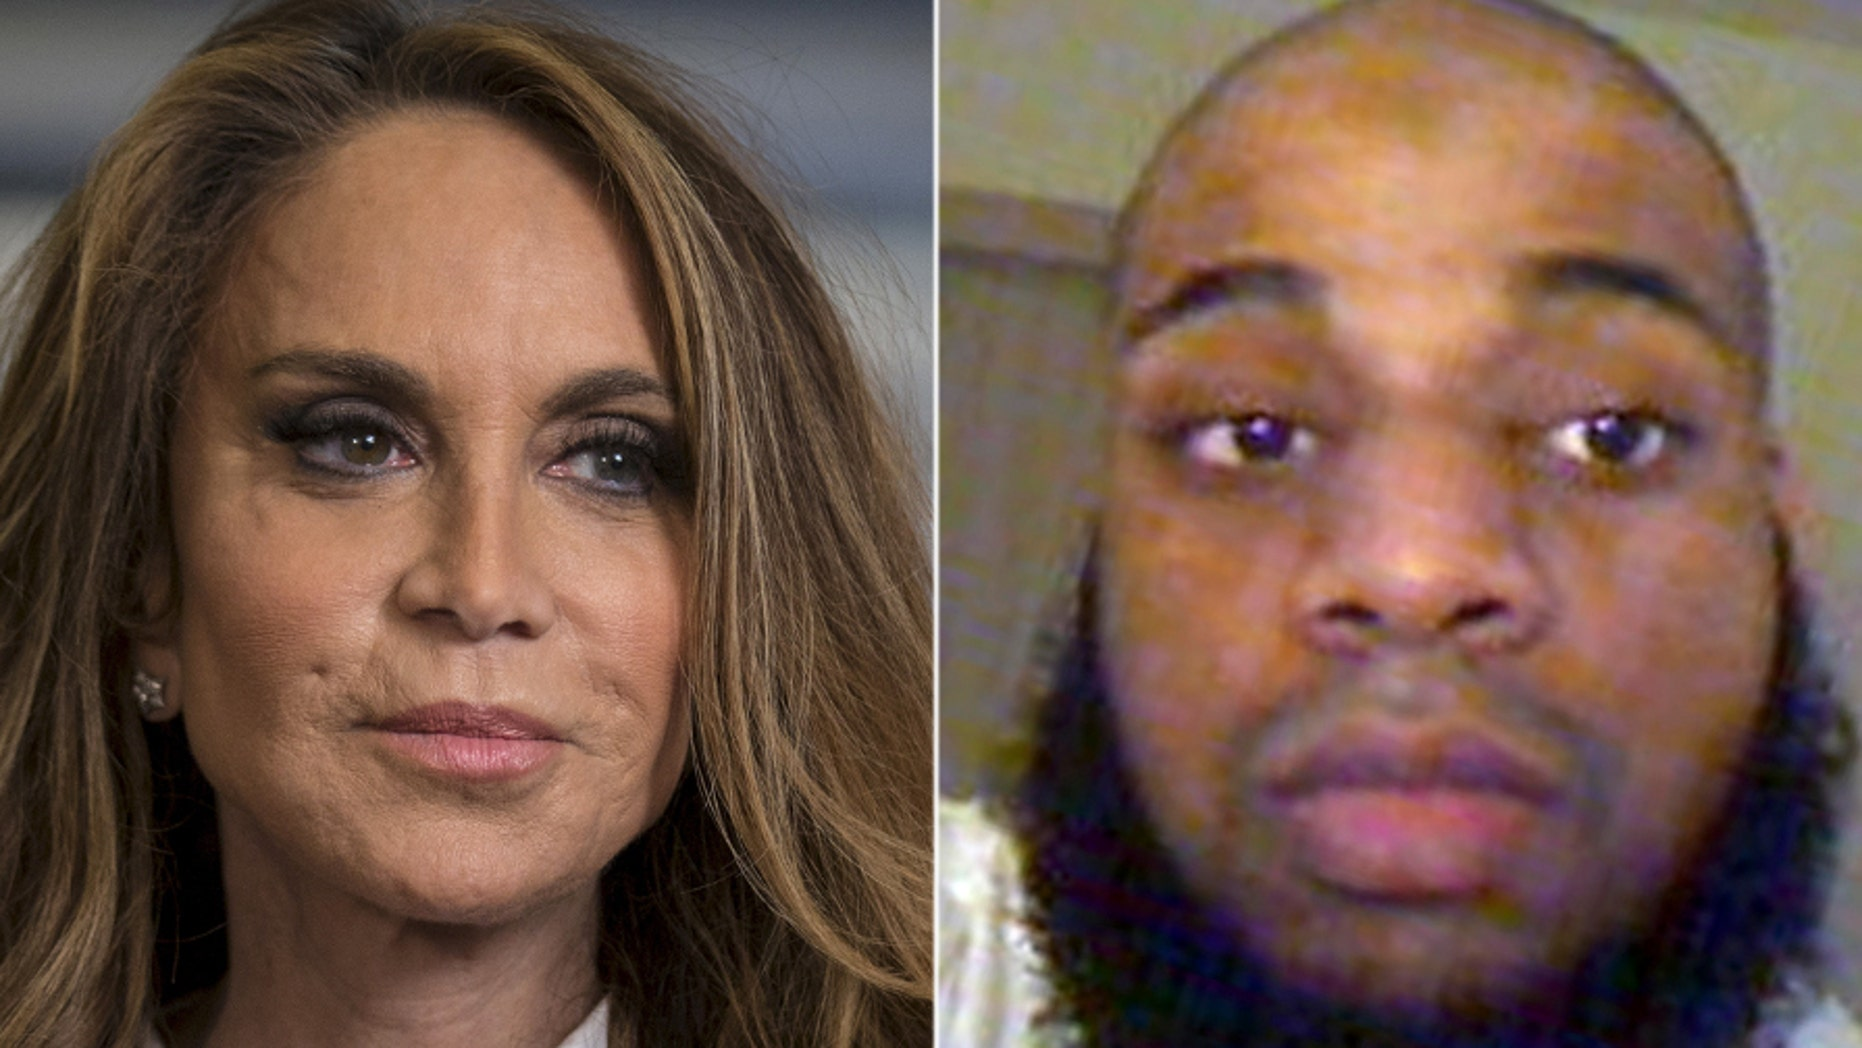 David Wright, right, was sentenced to 28 years in prison Tuesday for plotting to behead conservative blogger Pamela Geller, left.